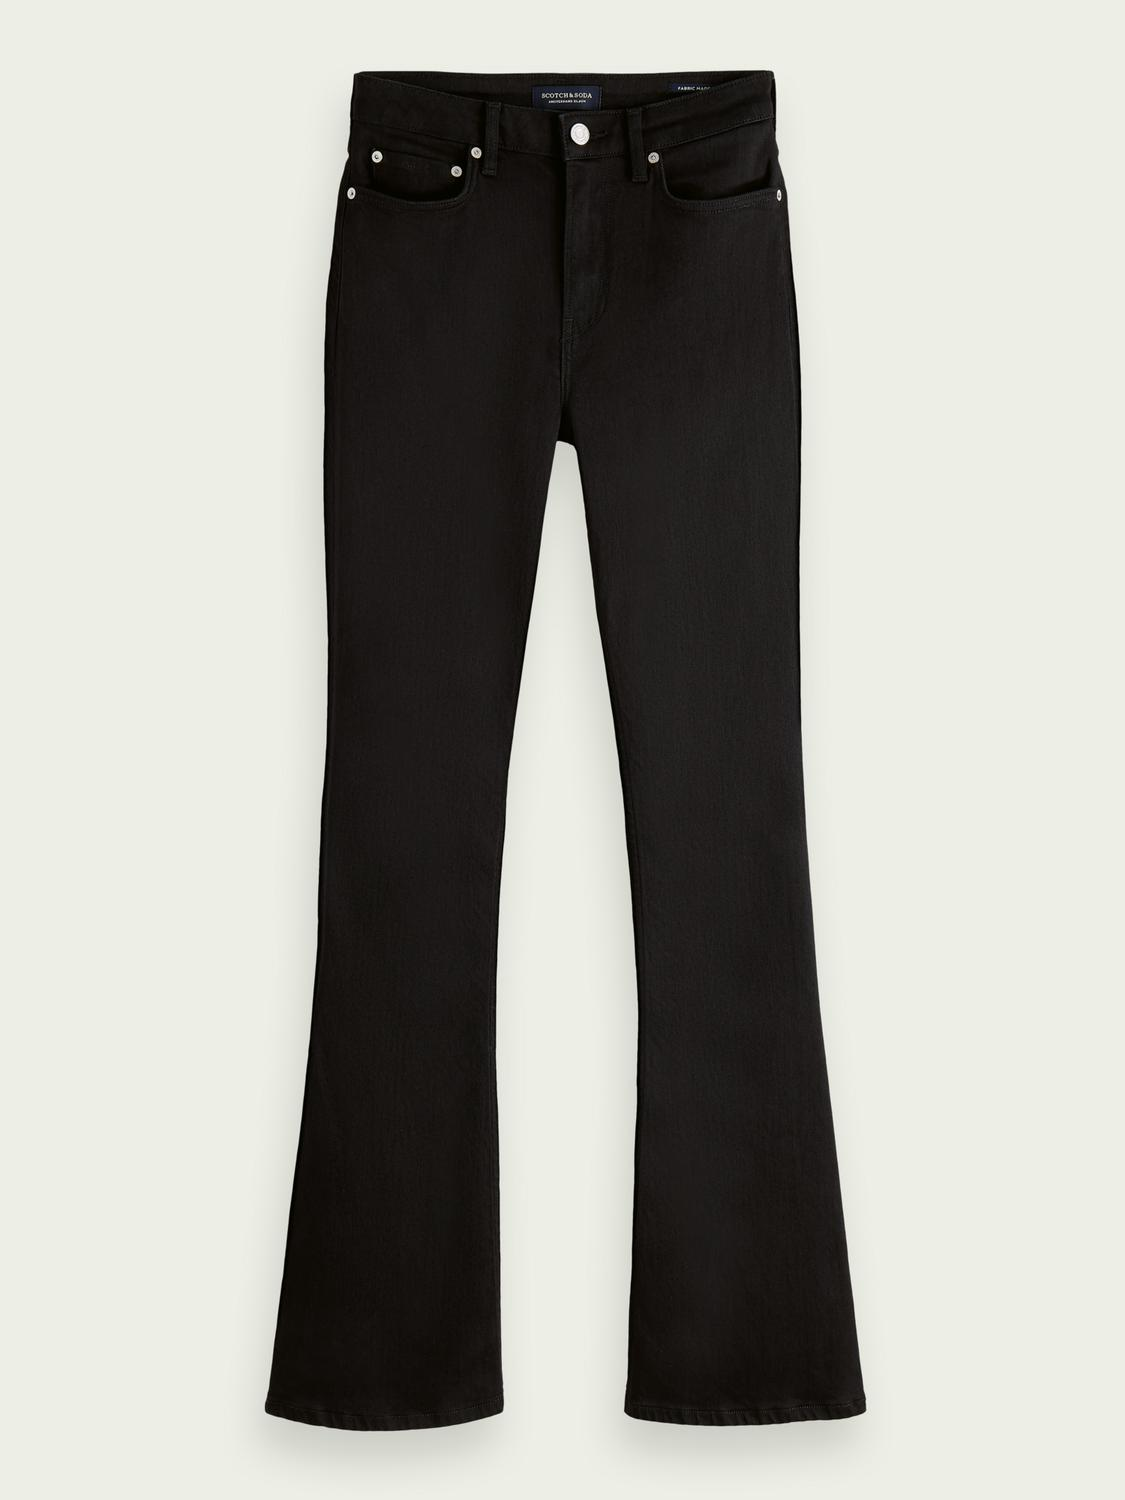 The Charm high-rise flared jeans —Think Different 5